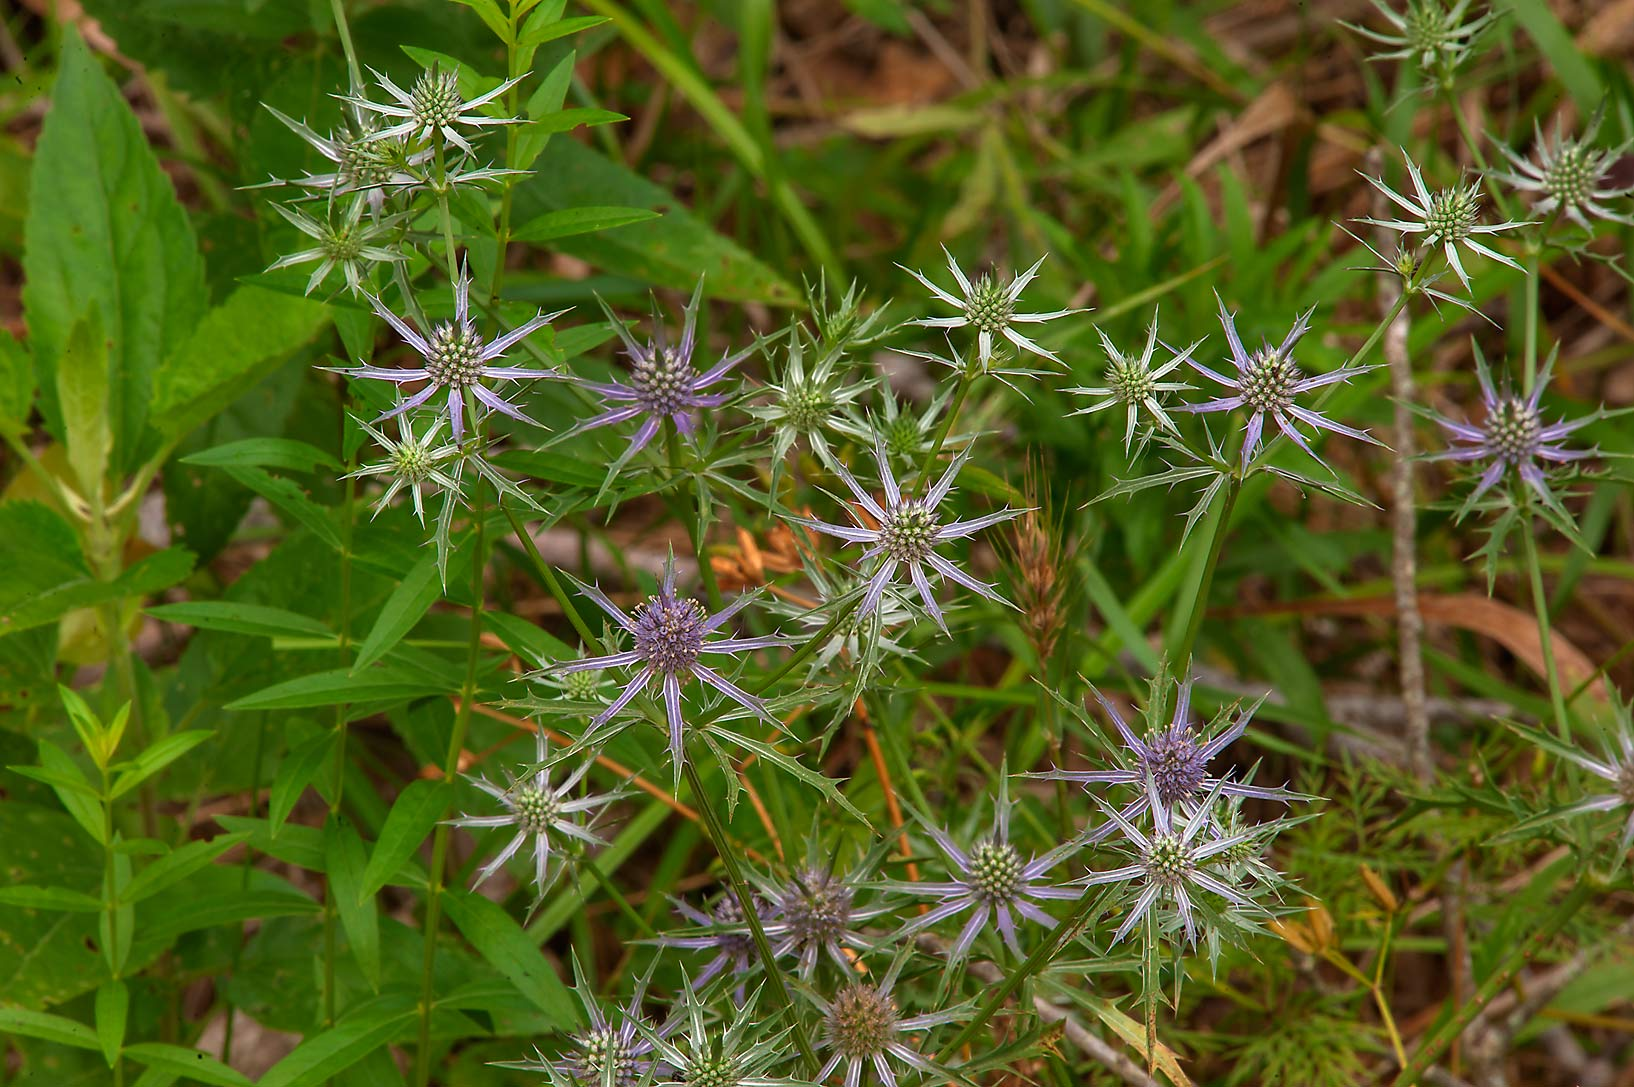 Hooker's eryngo (Eryngium hookeri) on Racoon Run...Creek Park. College Station, Texas